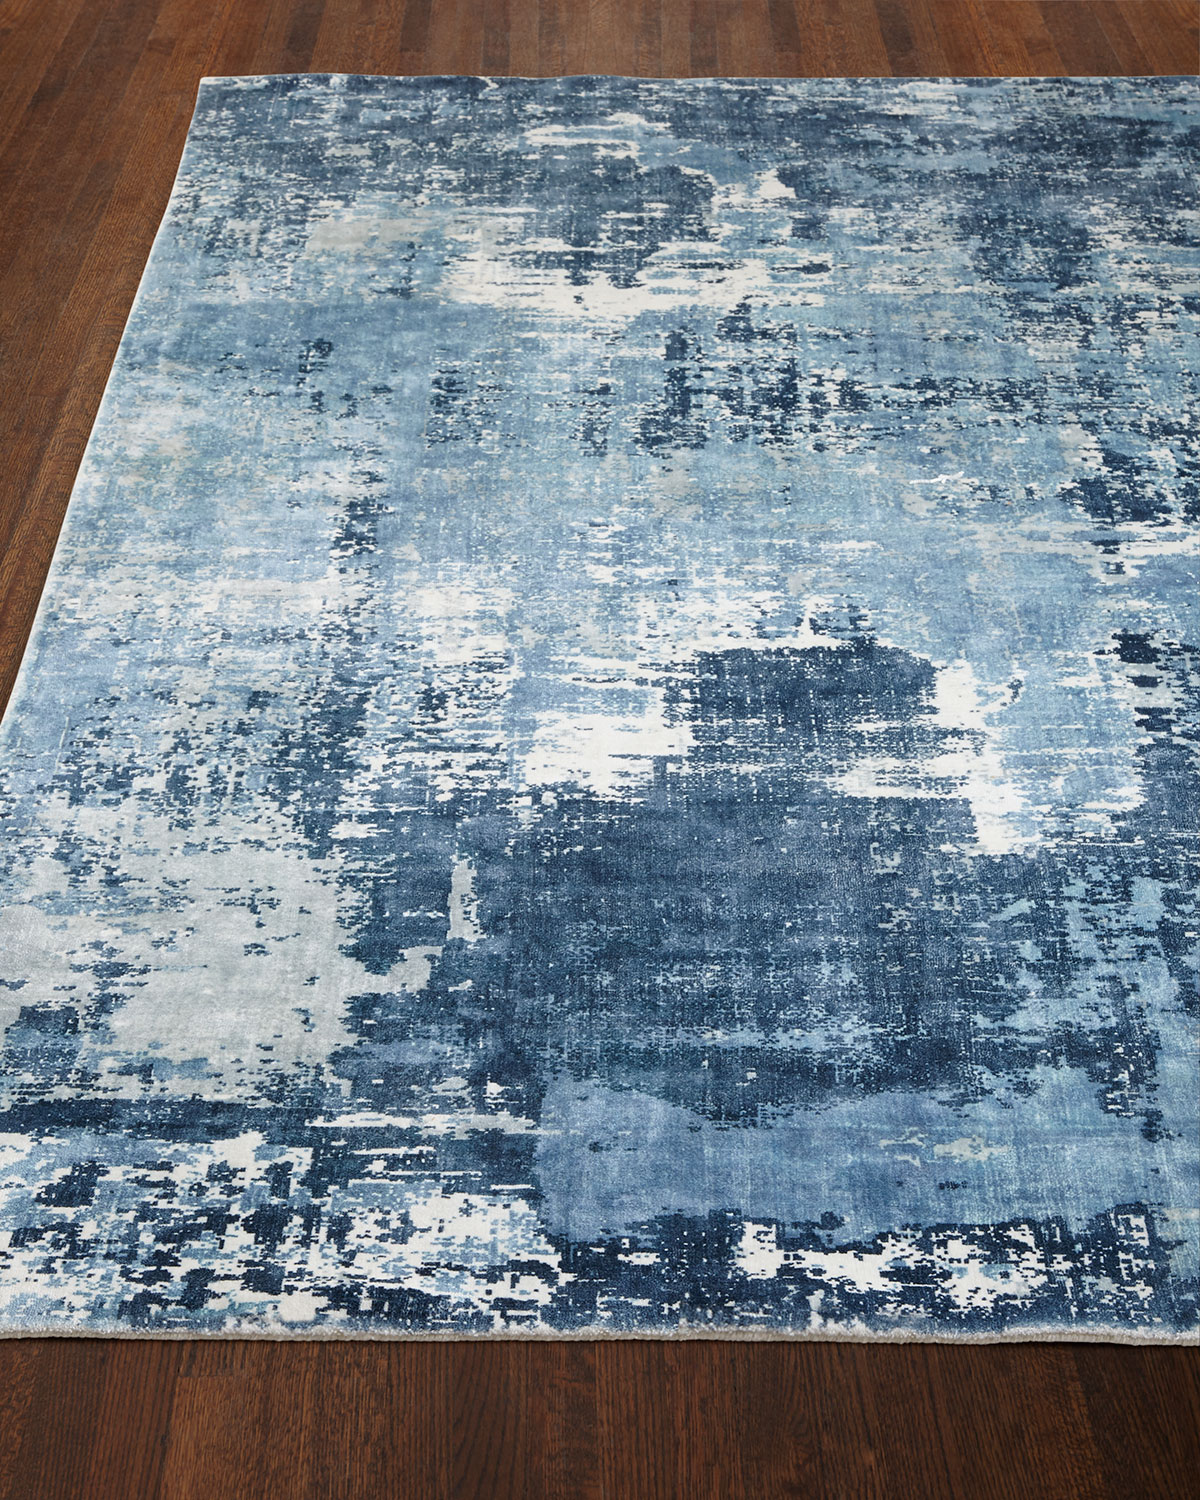 Exquisite Rugs Blue Horizon Rug, 10' x 14'